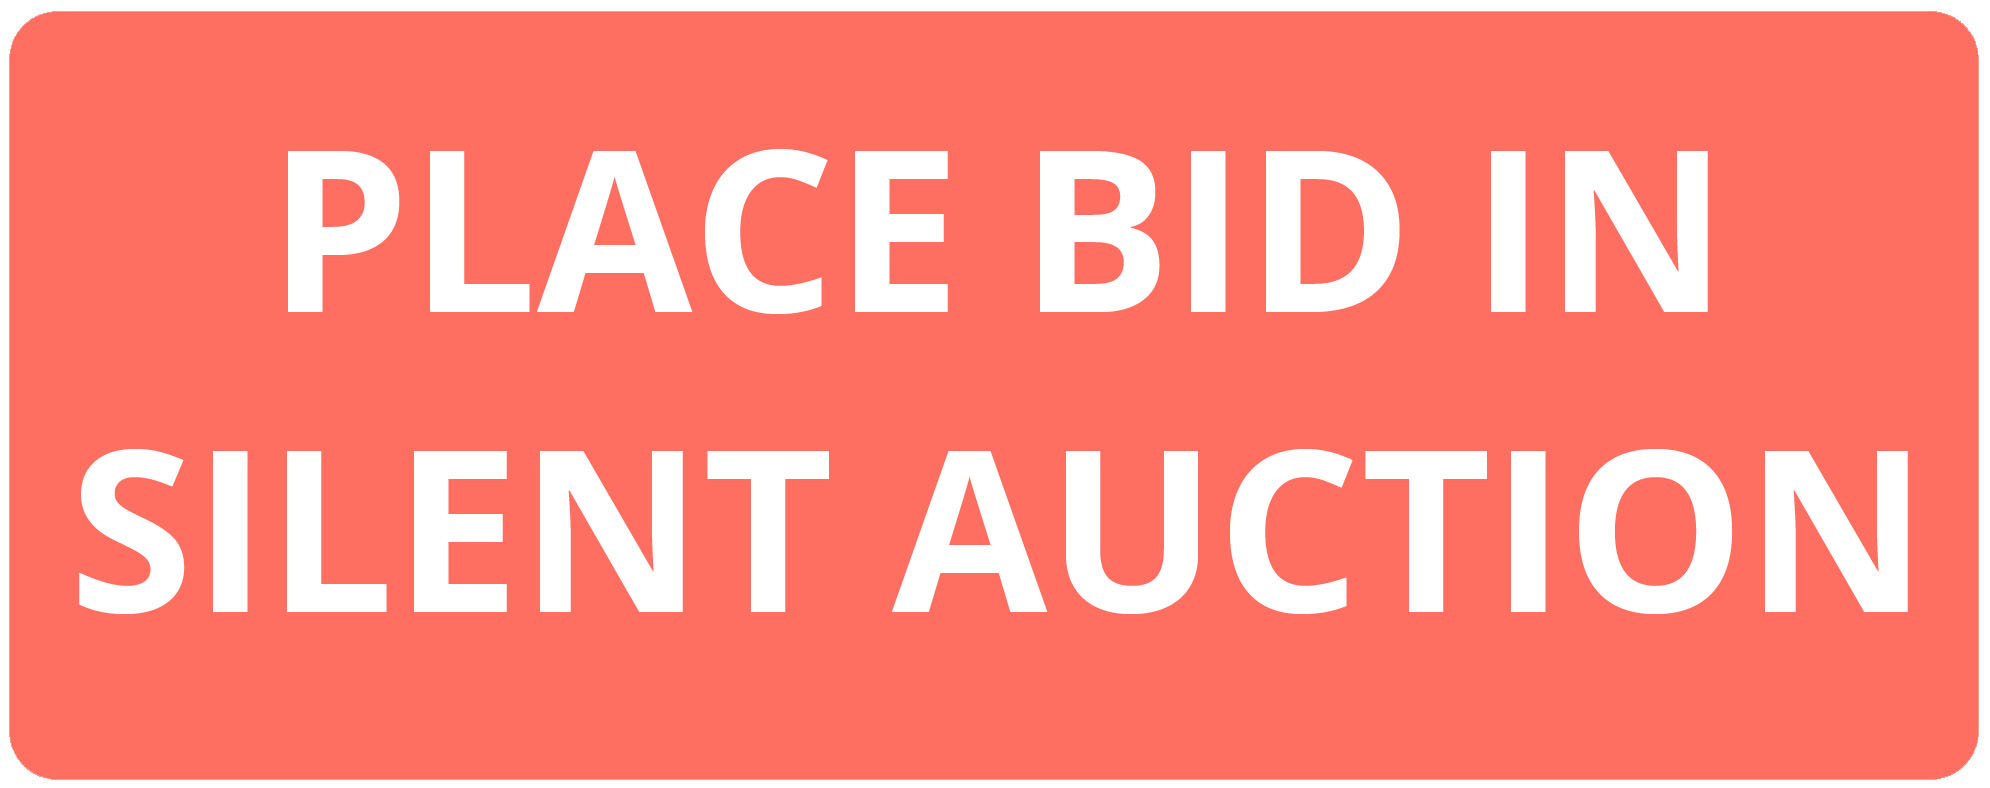 Place Bid in Silent Auction